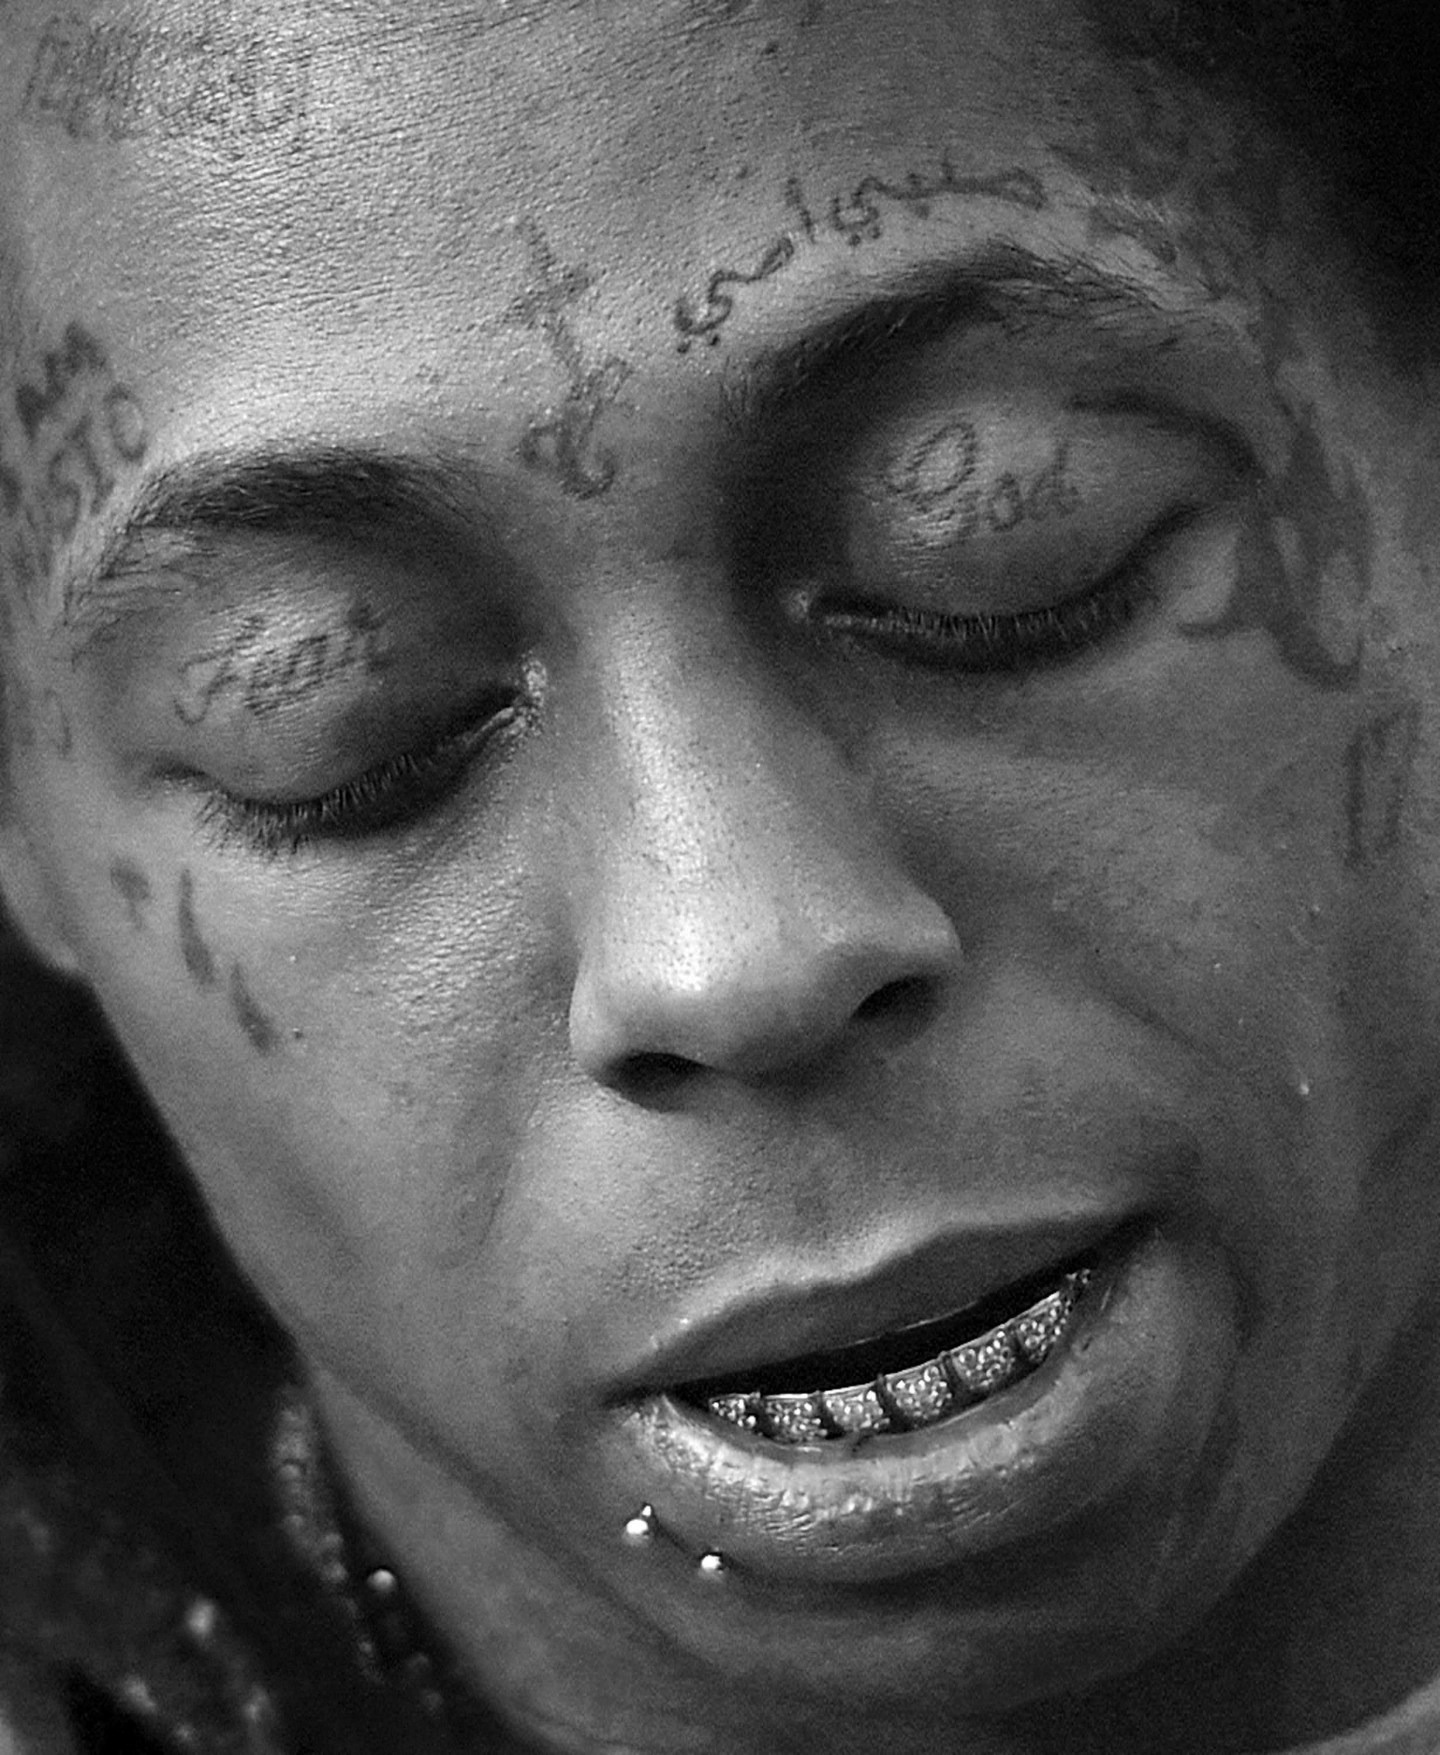 Even At His Peak, Lil Wayne Was Never Invincible